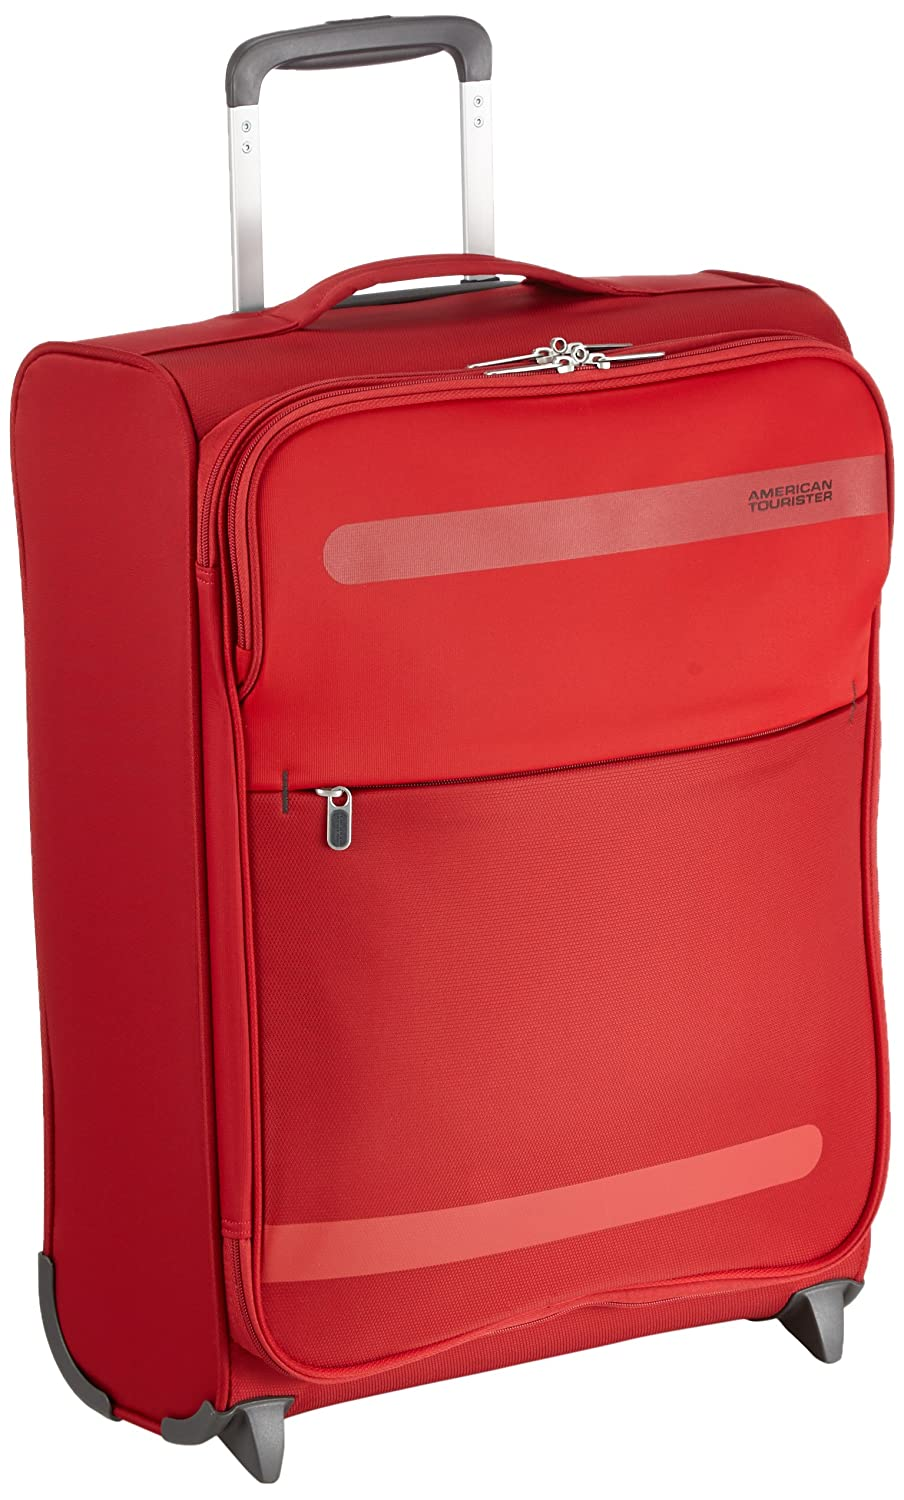 American Tourister - Herolite Super Light Upright 55/20, 55 cm, 41L, Cactus Green 80370/4219